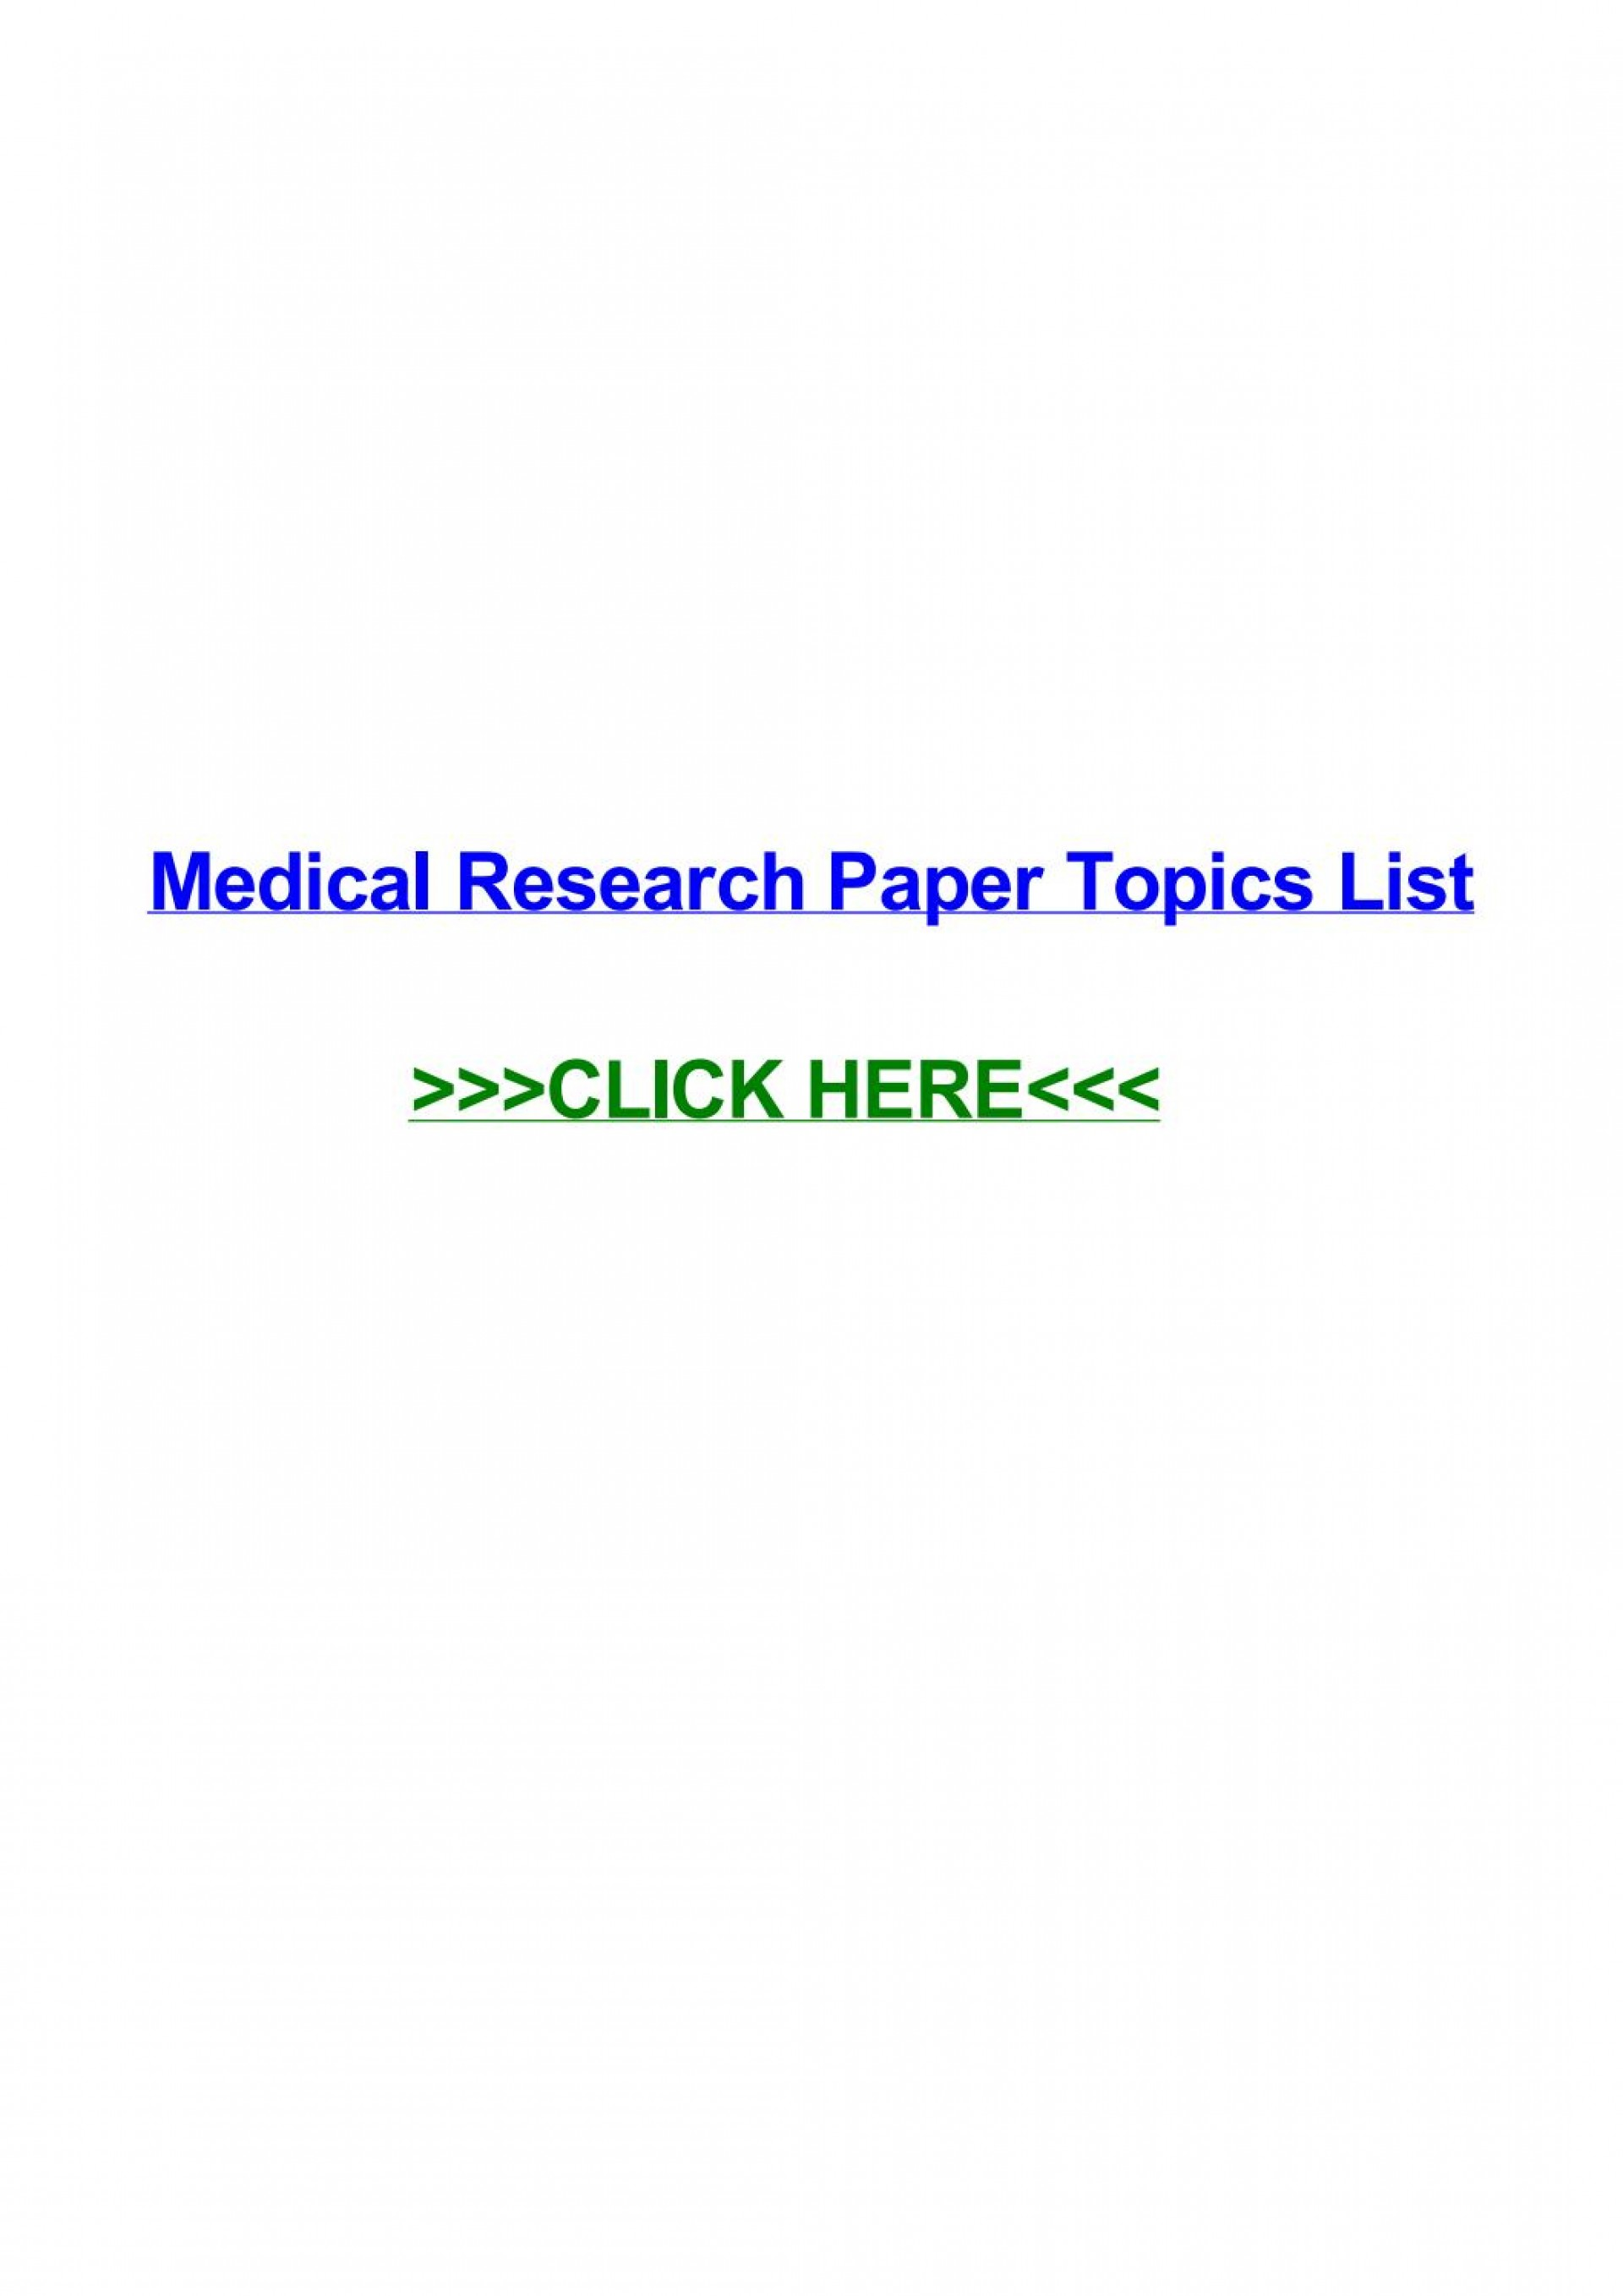 009 Medical Topics For Research Paper Page 1 Imposing Hot Papers Argumentative Best 1920